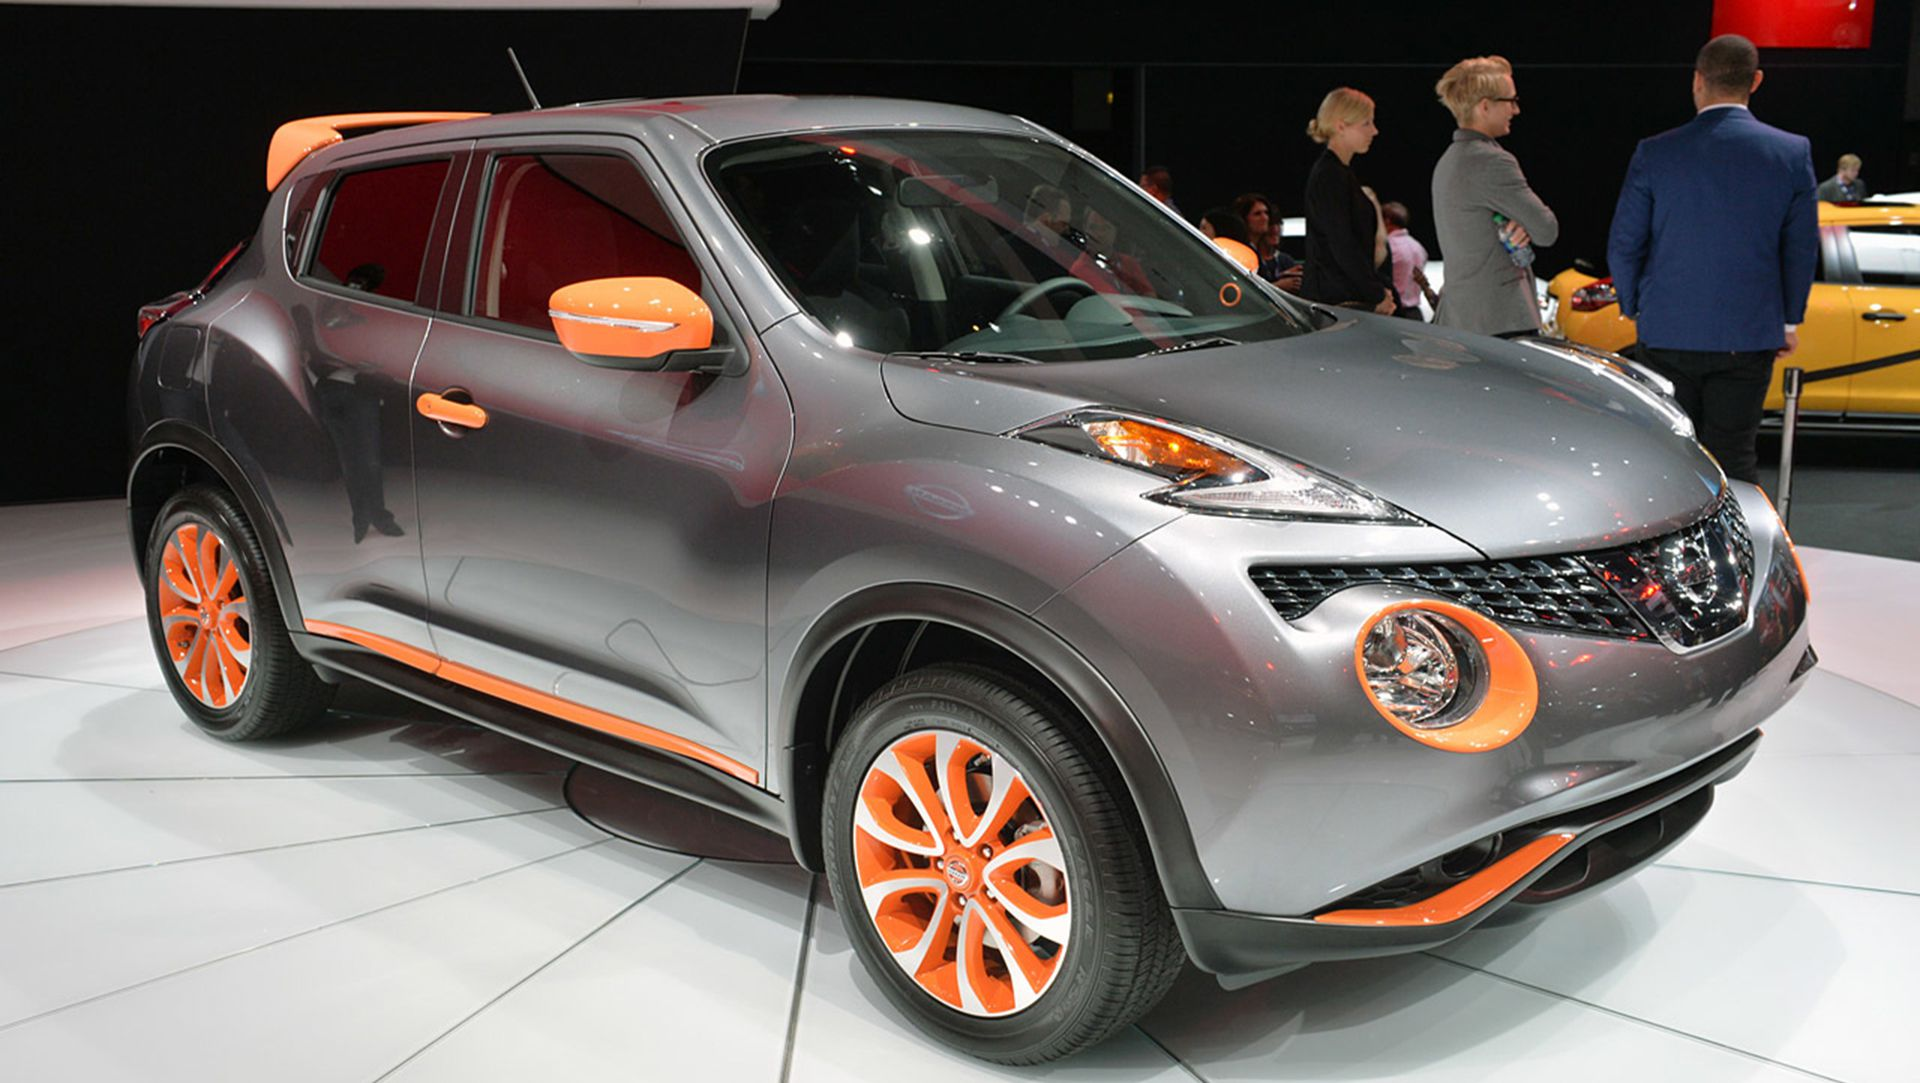 nissan jukes further away from manuals auto moto japan bullet nissan jukes further away from manuals